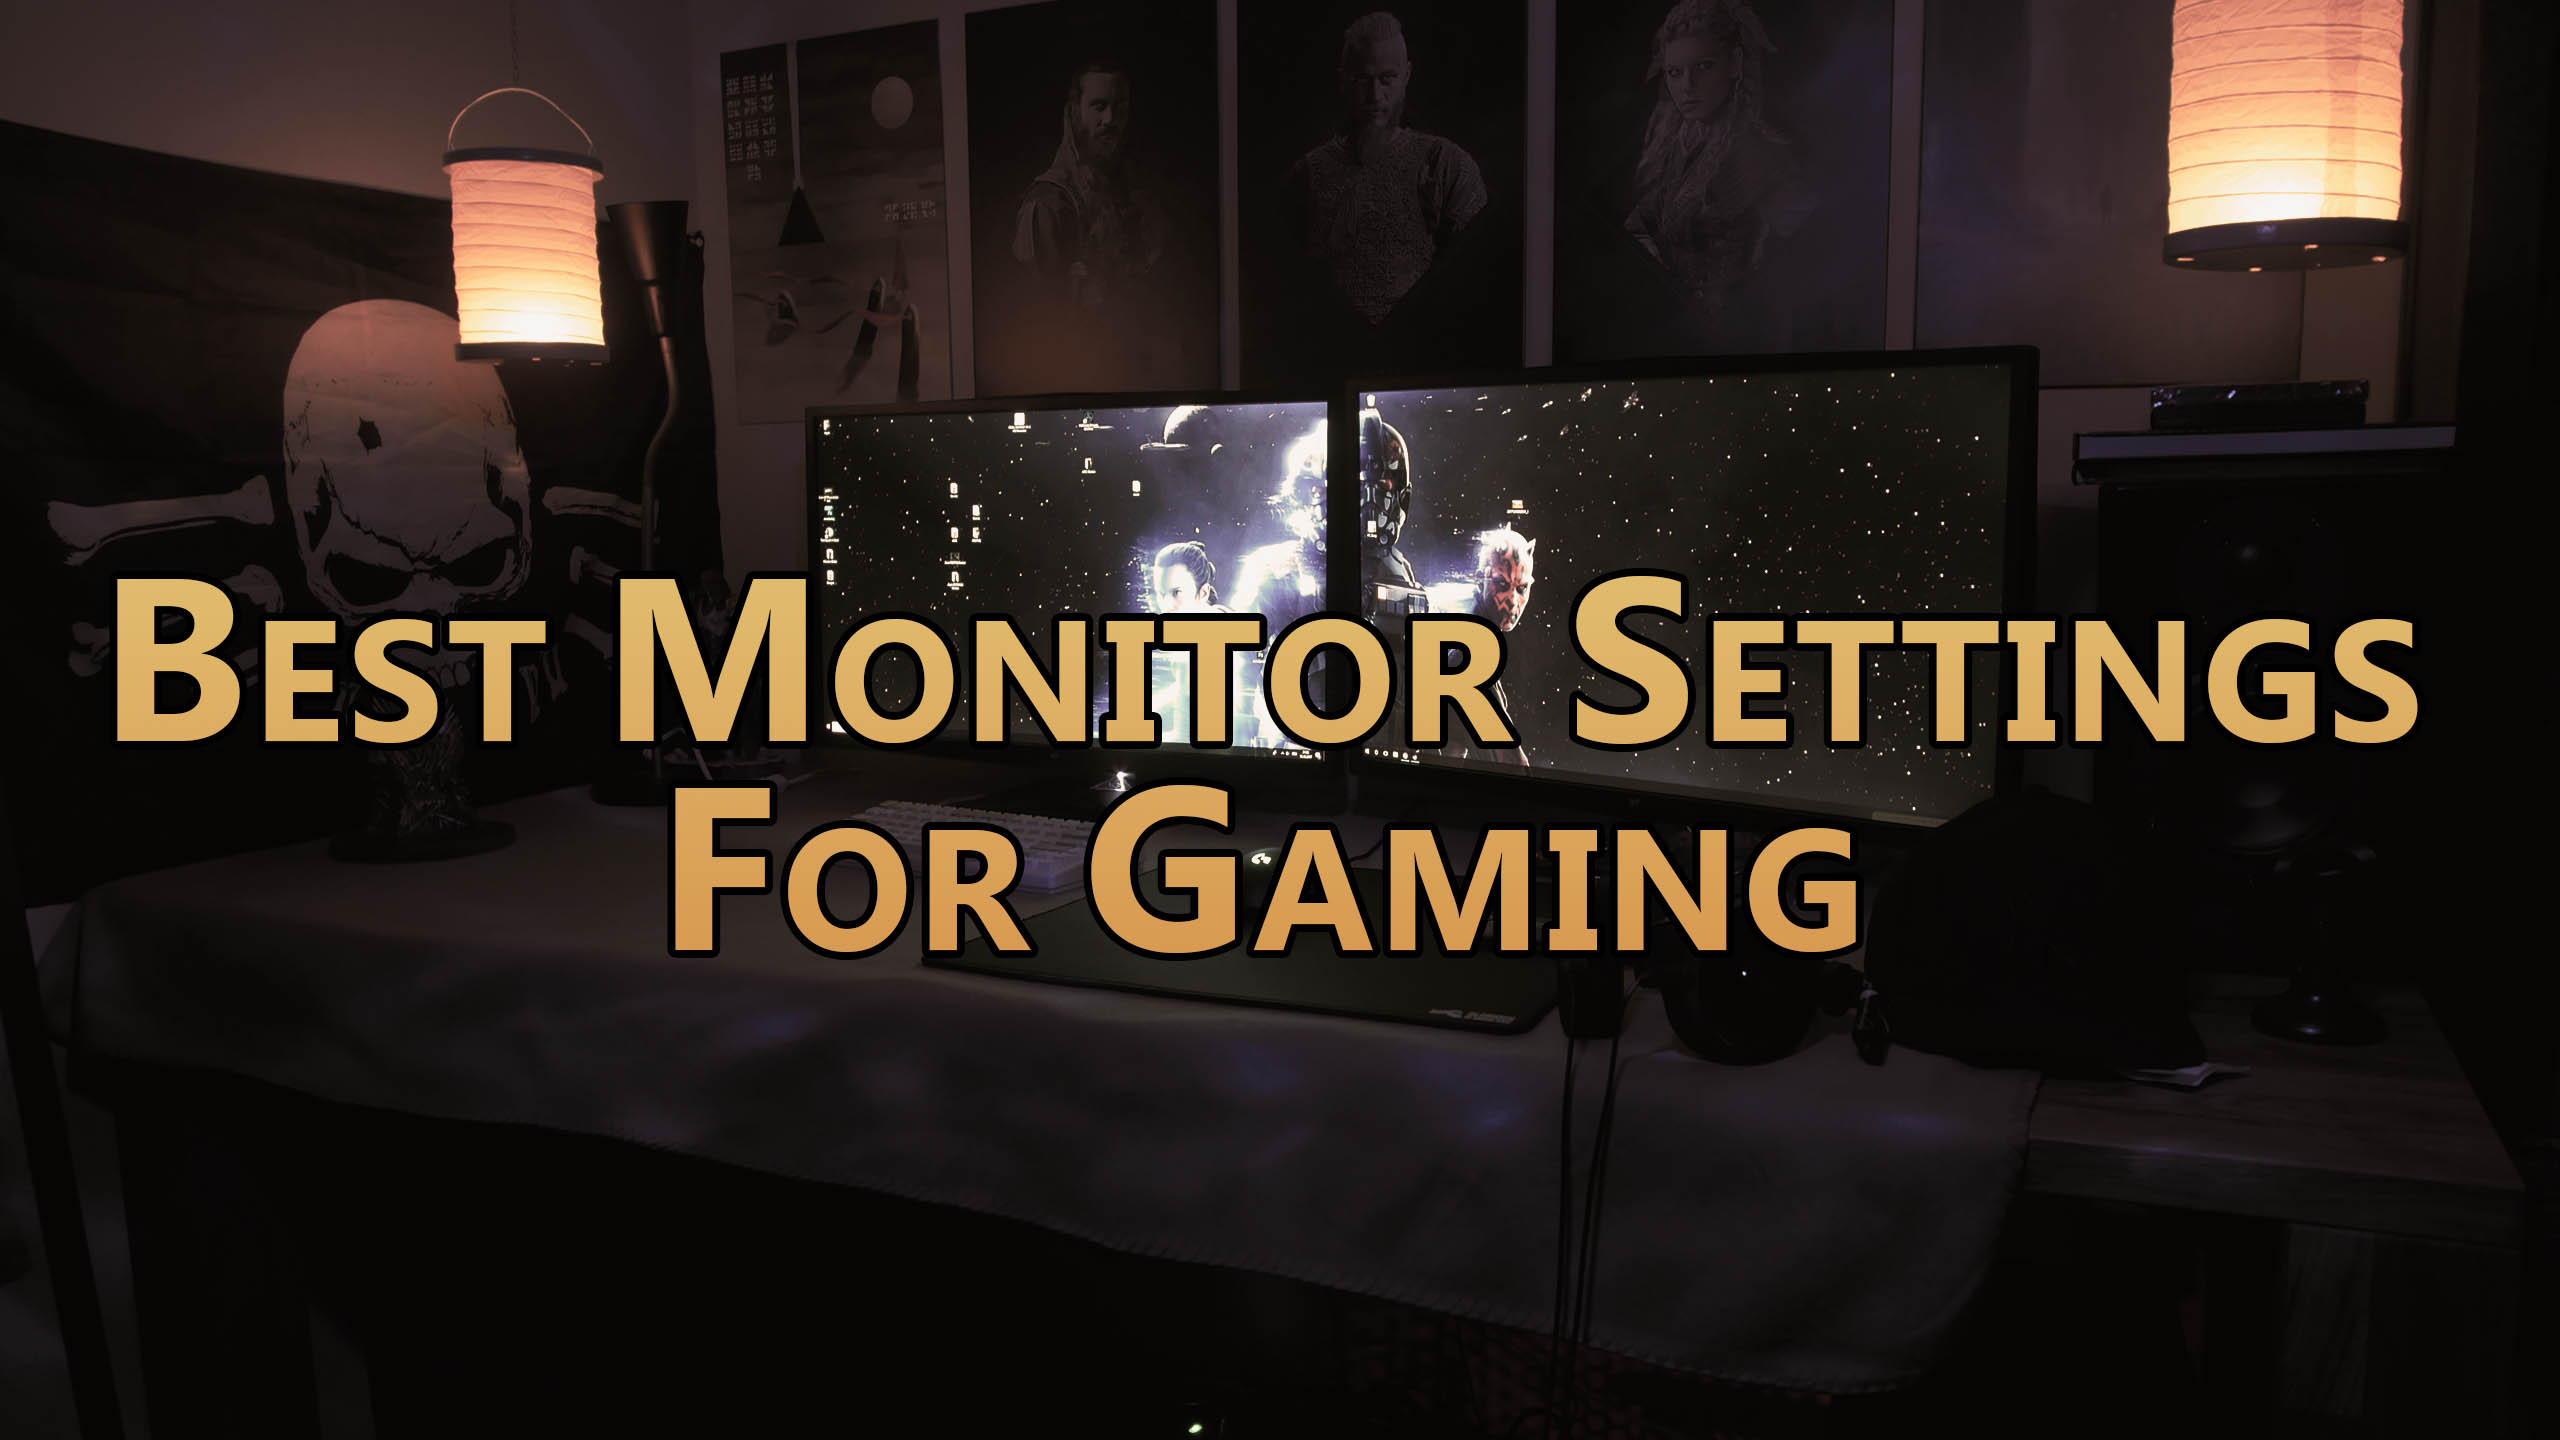 Best Monitor Settings For Gaming - For all Games